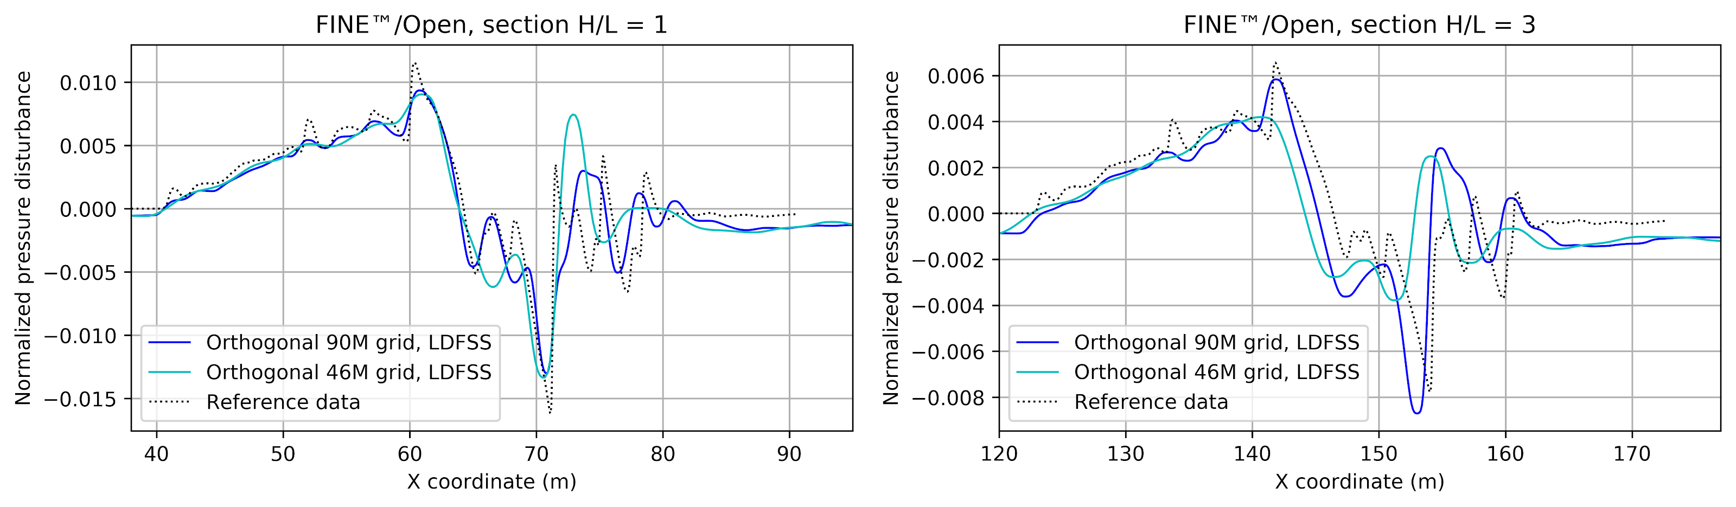 Figure 9: a) Comparison of normalized pressure disturbance profile between 46.6M and 90M orthogonal meshes to the workshop entries average on the finest 194.4M mesh at the location corresponding to a) 1 length below the airplane b) 3 length below the airplane